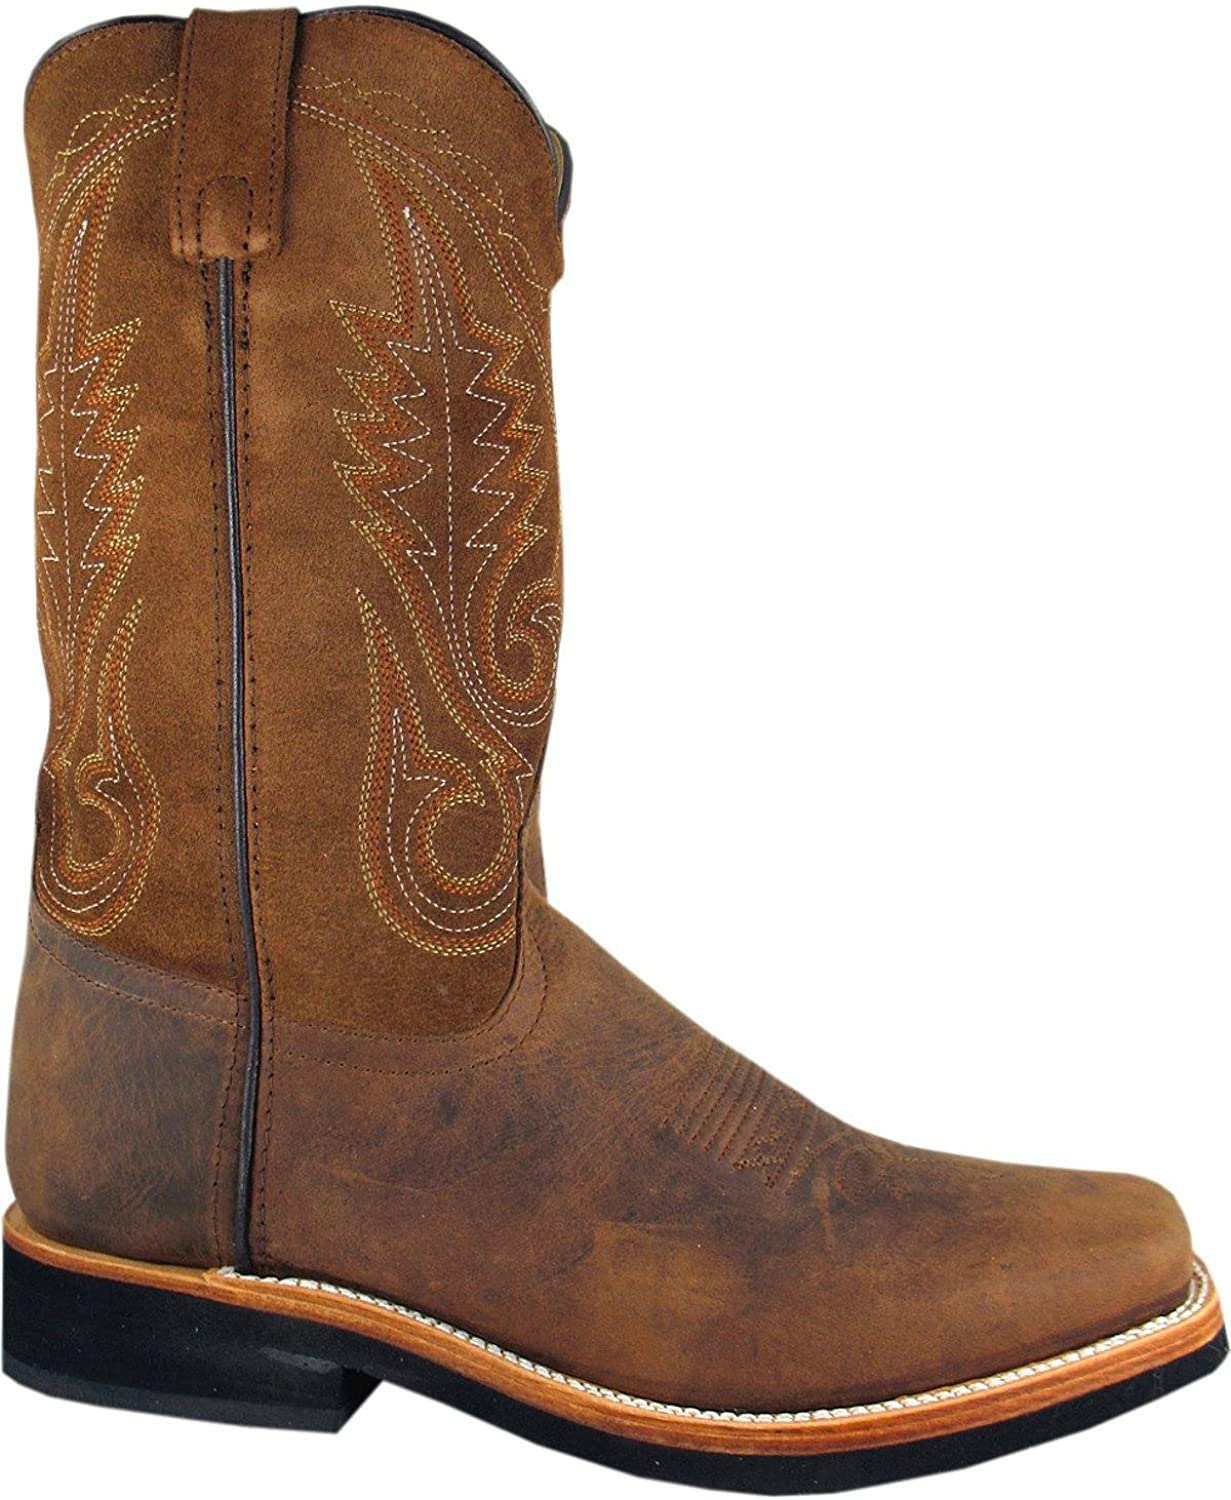 Smoky Mountain Men's Boonville Cowboy Boot Square Toe - 4028